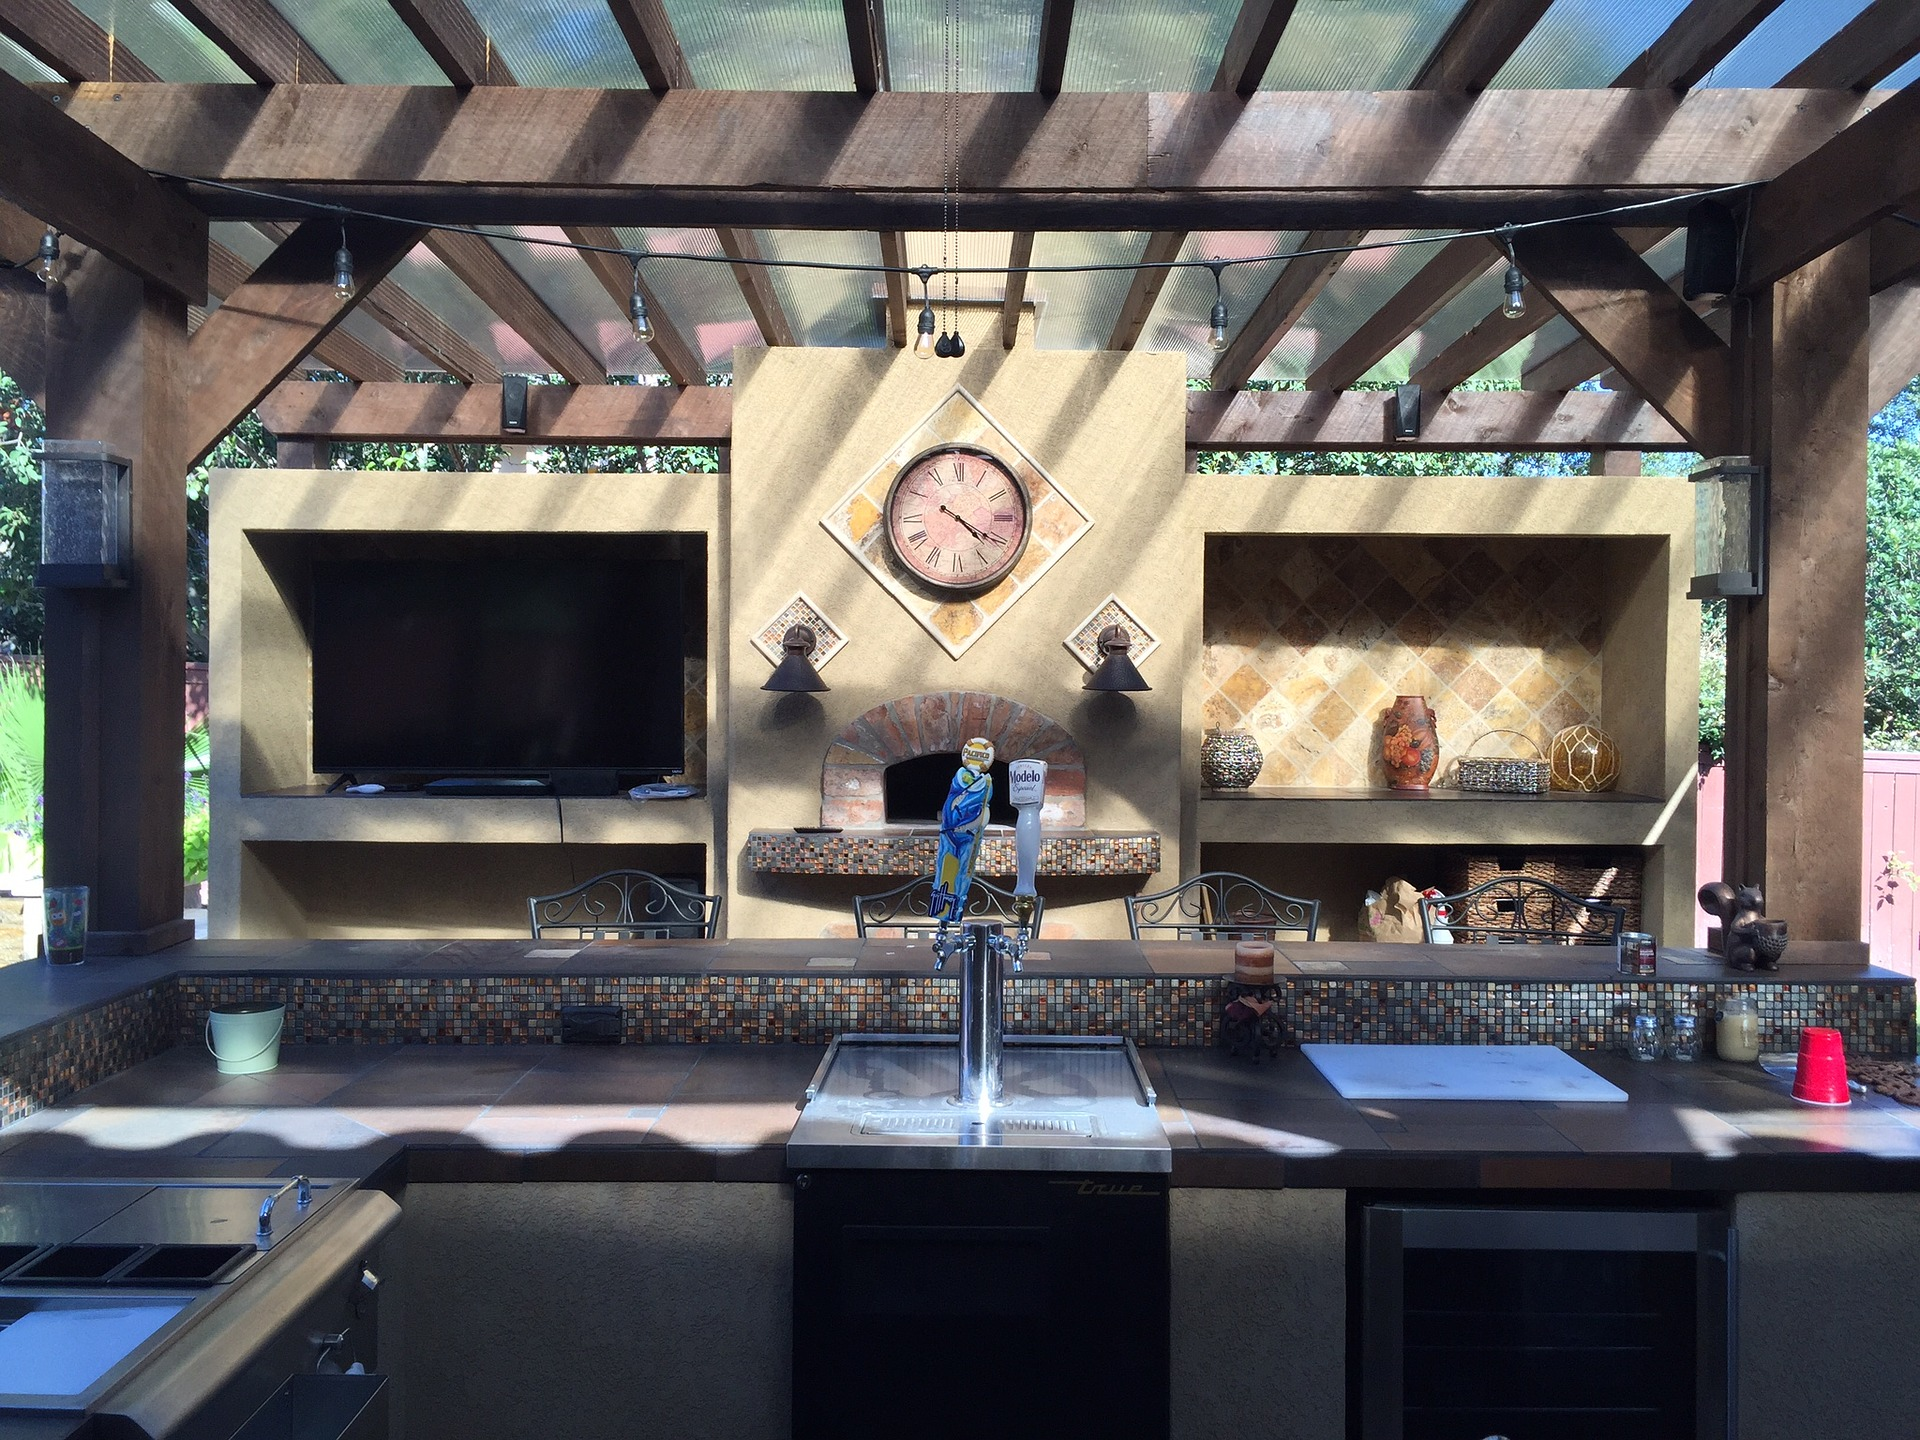 7 Spectacular Kitchen Staging Ideas Photos: 7 Backyard Renovations That Increase Home Value Patio